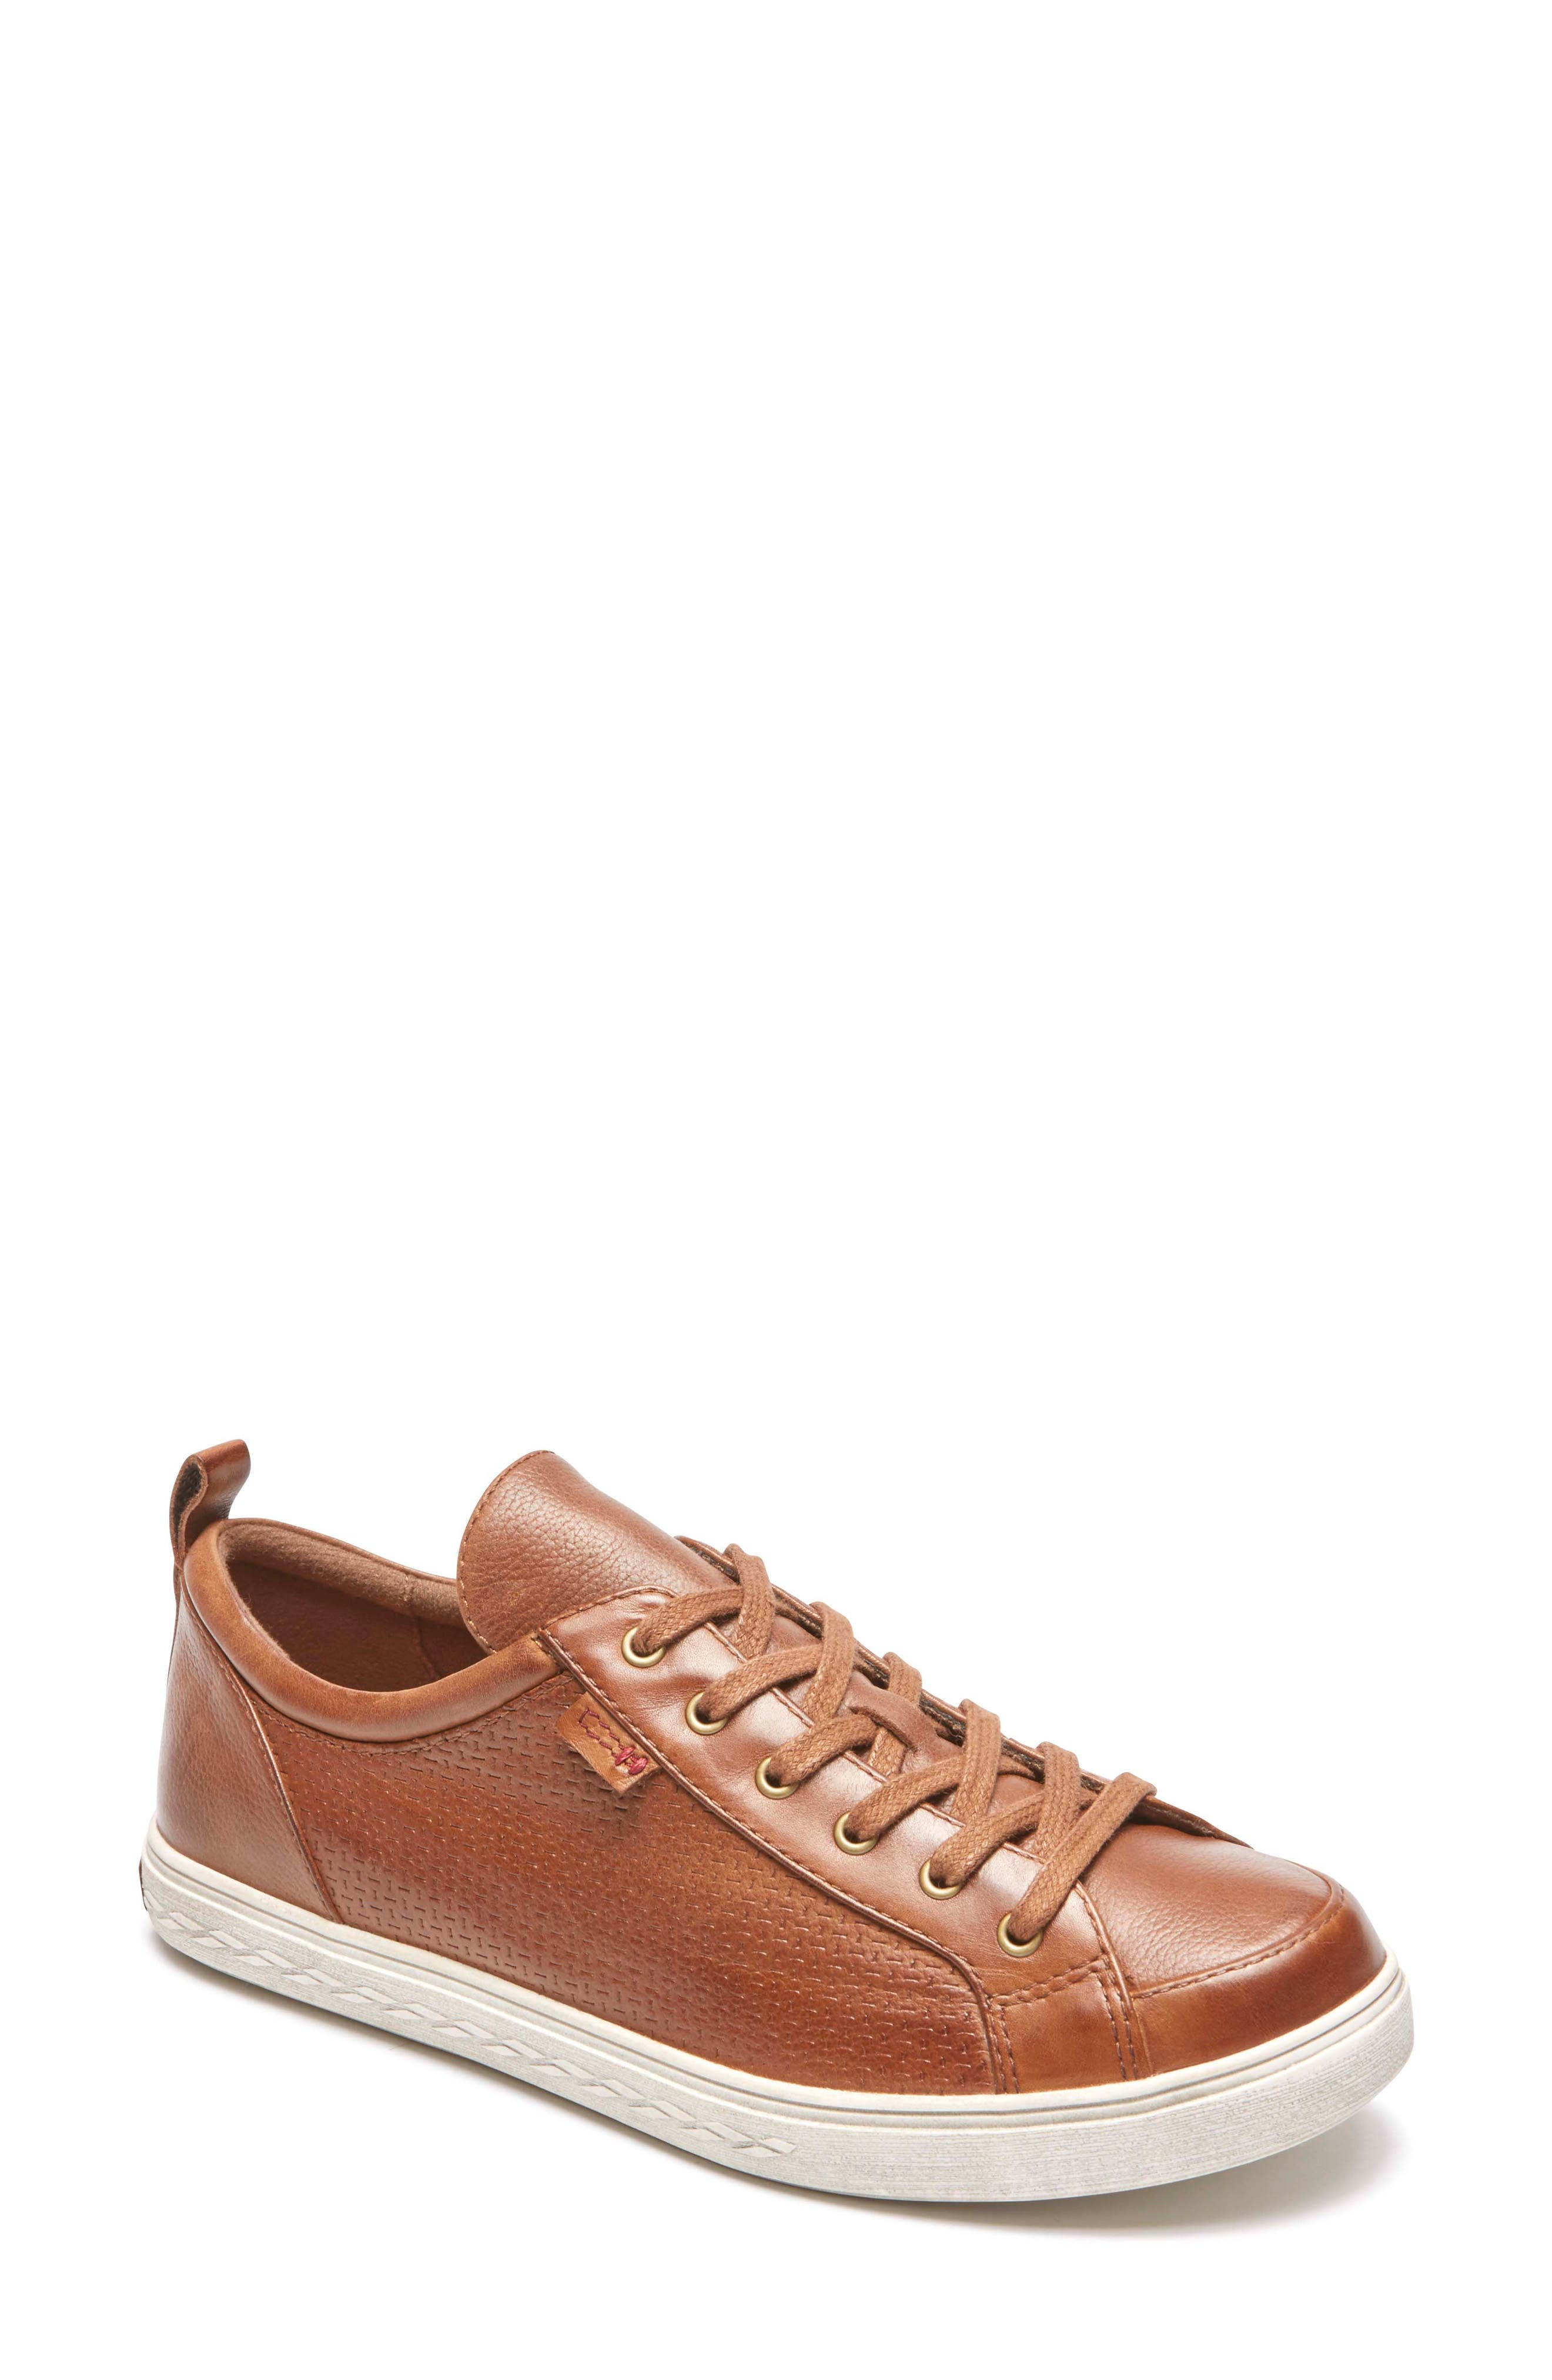 Willa Sneaker,                             Main thumbnail 1, color,                             ALMOND LEATHER